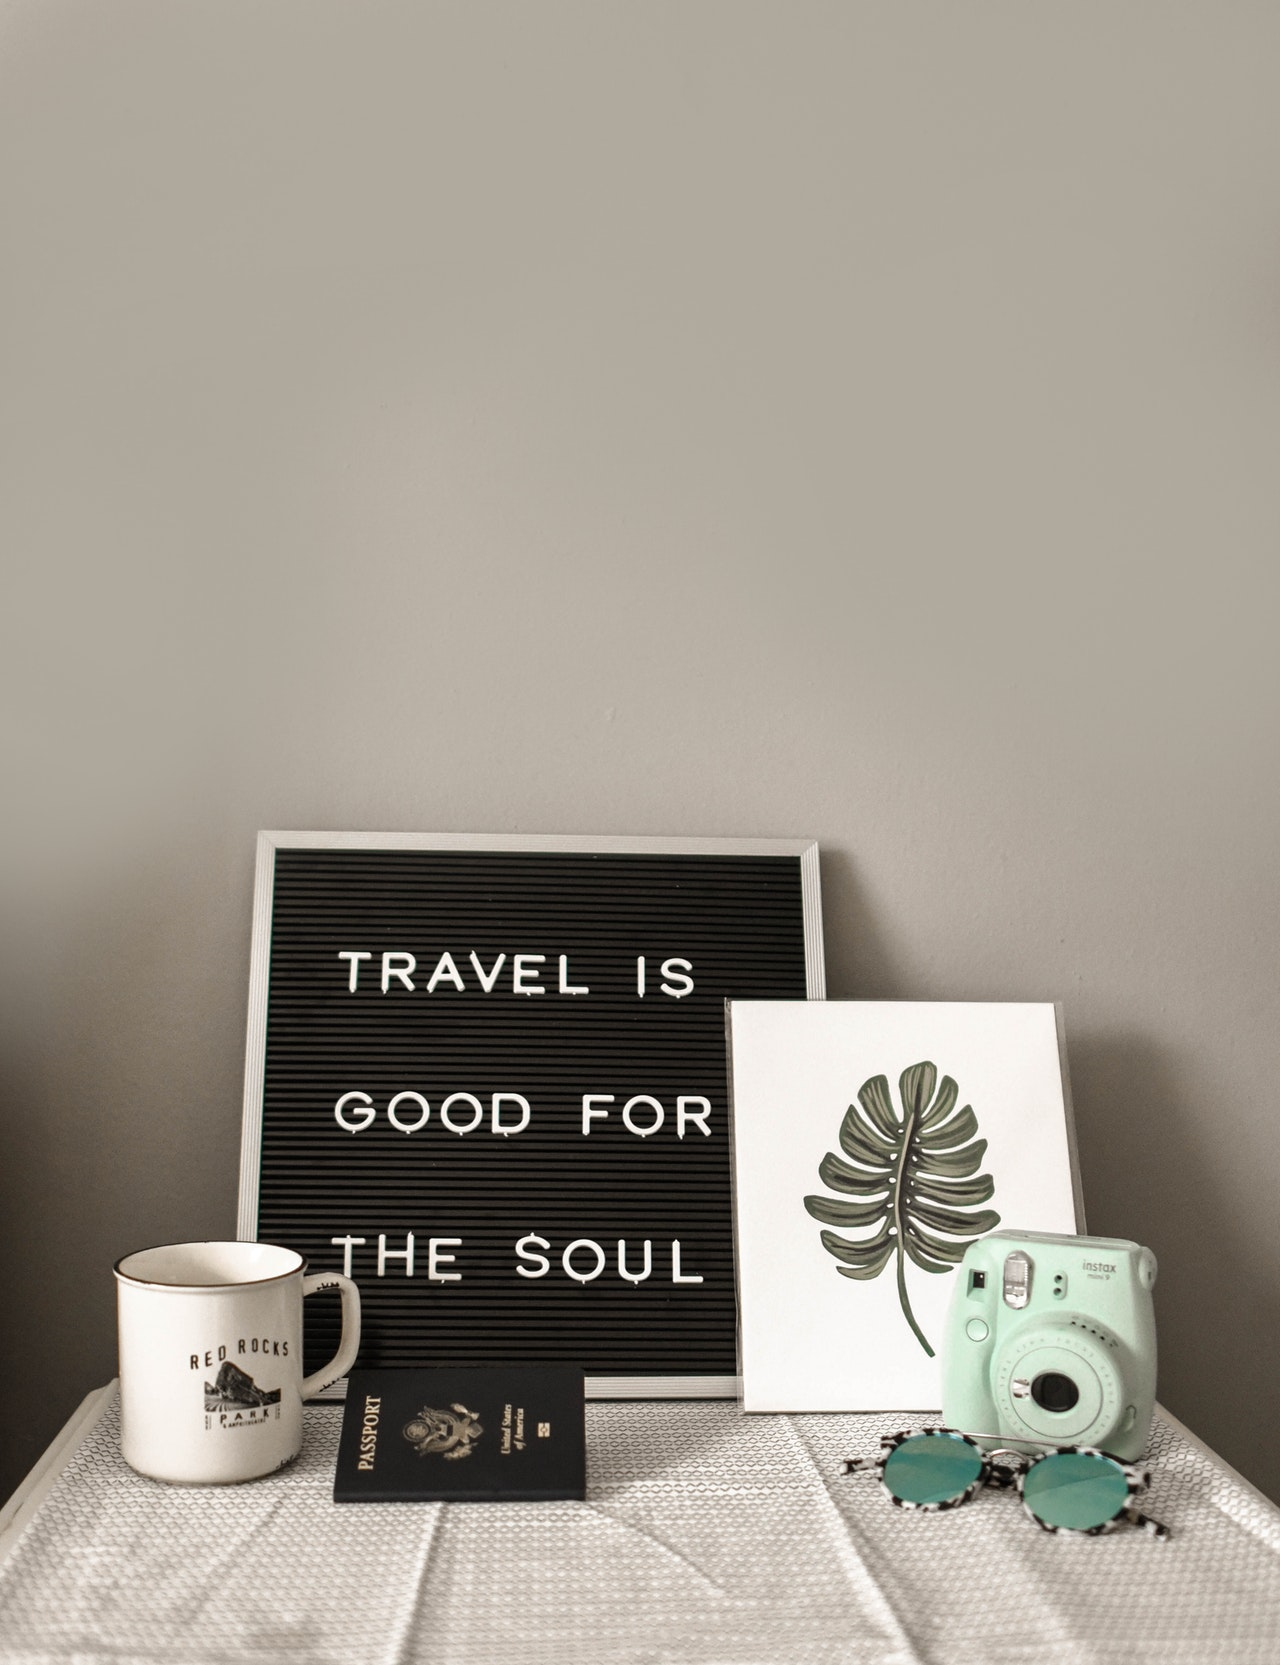 Travel is good for the soul.